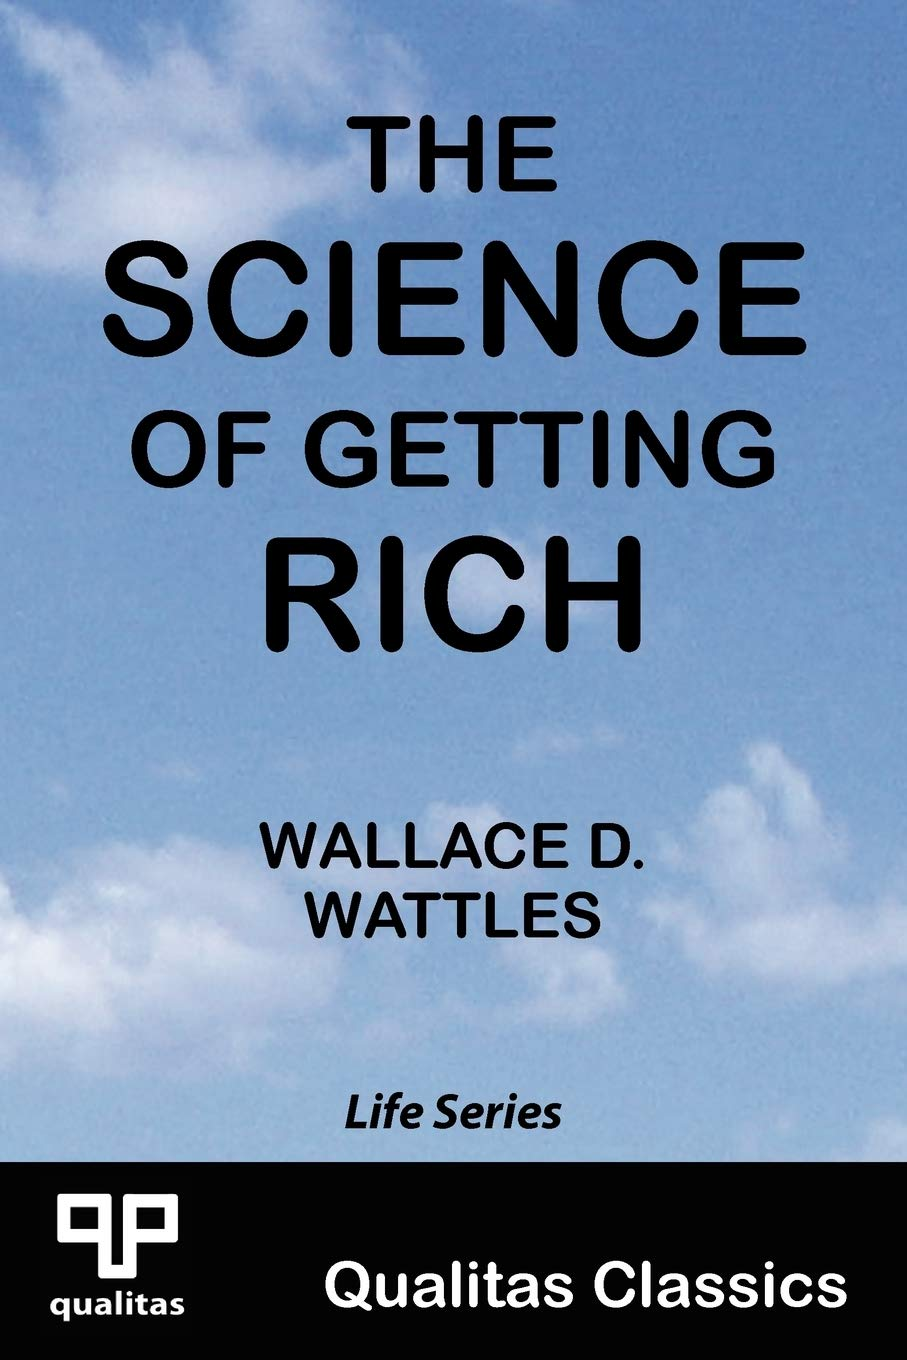 Download The Science Of Getting Rich (Qualitas Classics) 